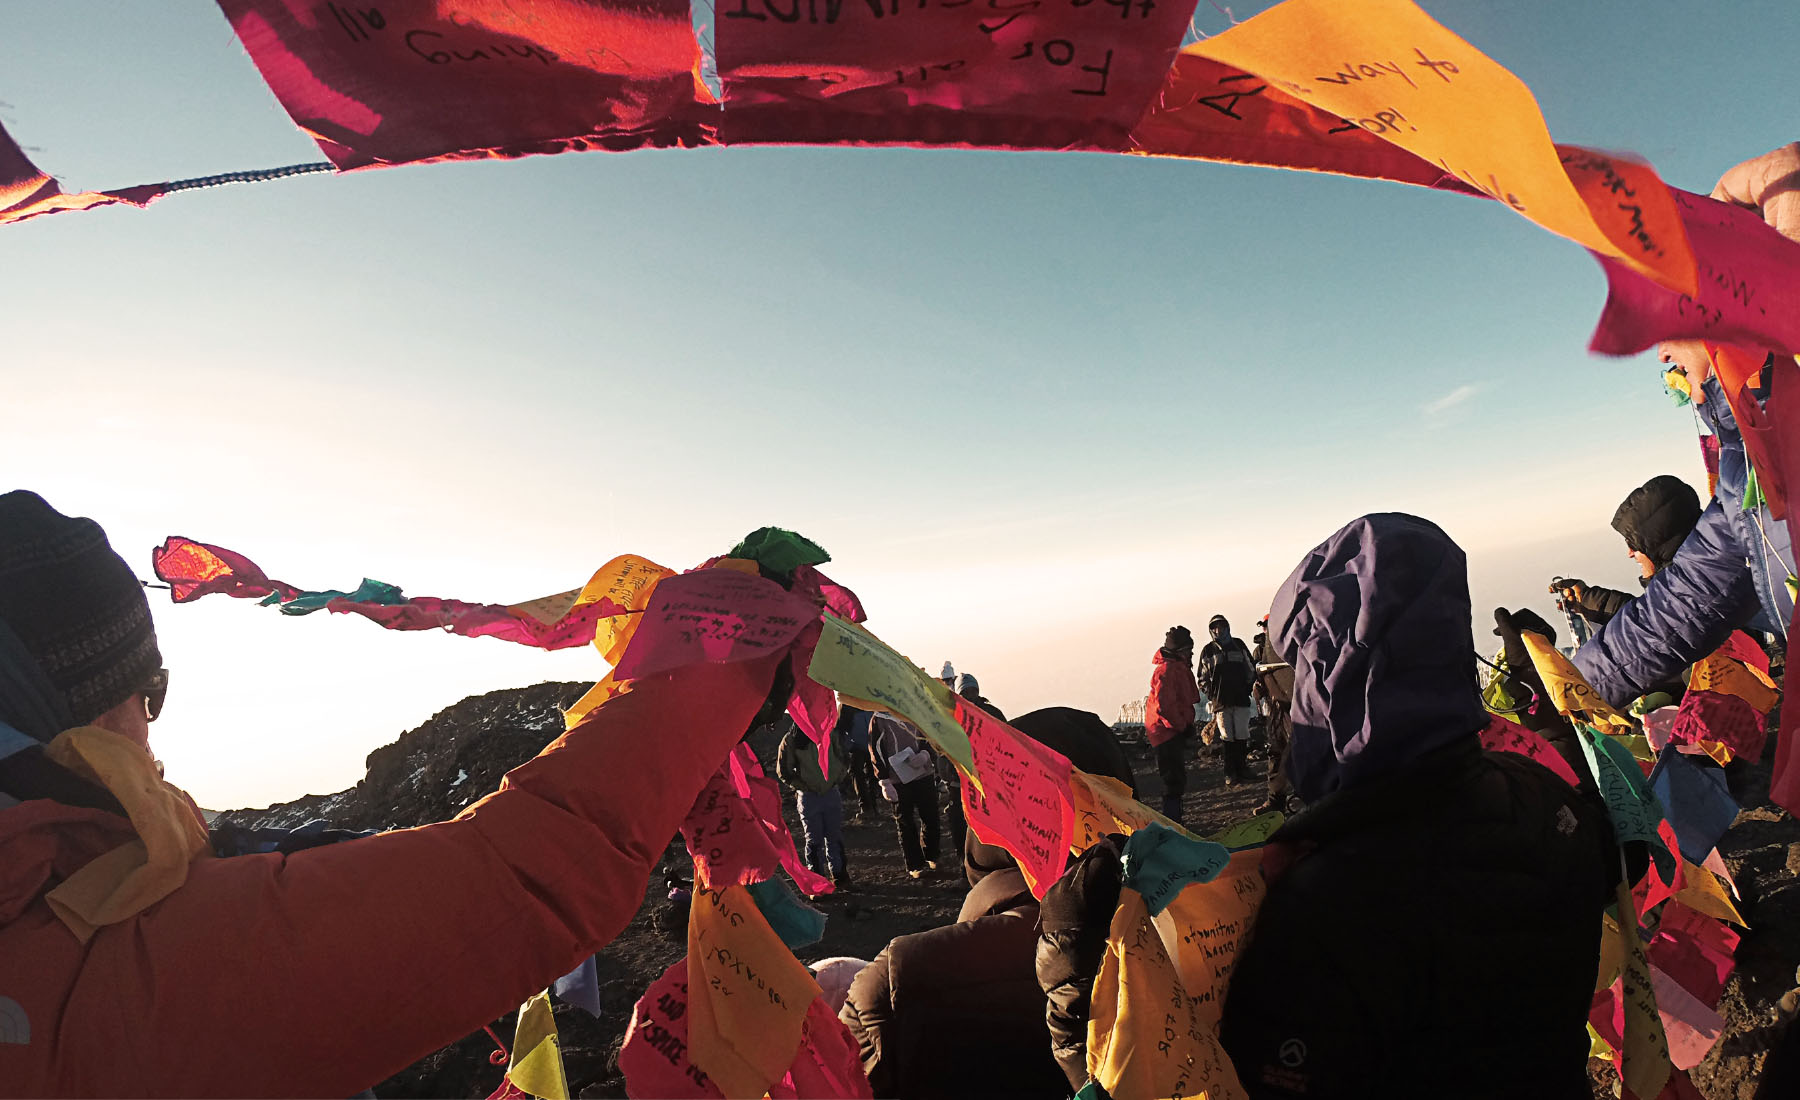 Summits of Hope Prayer Flags